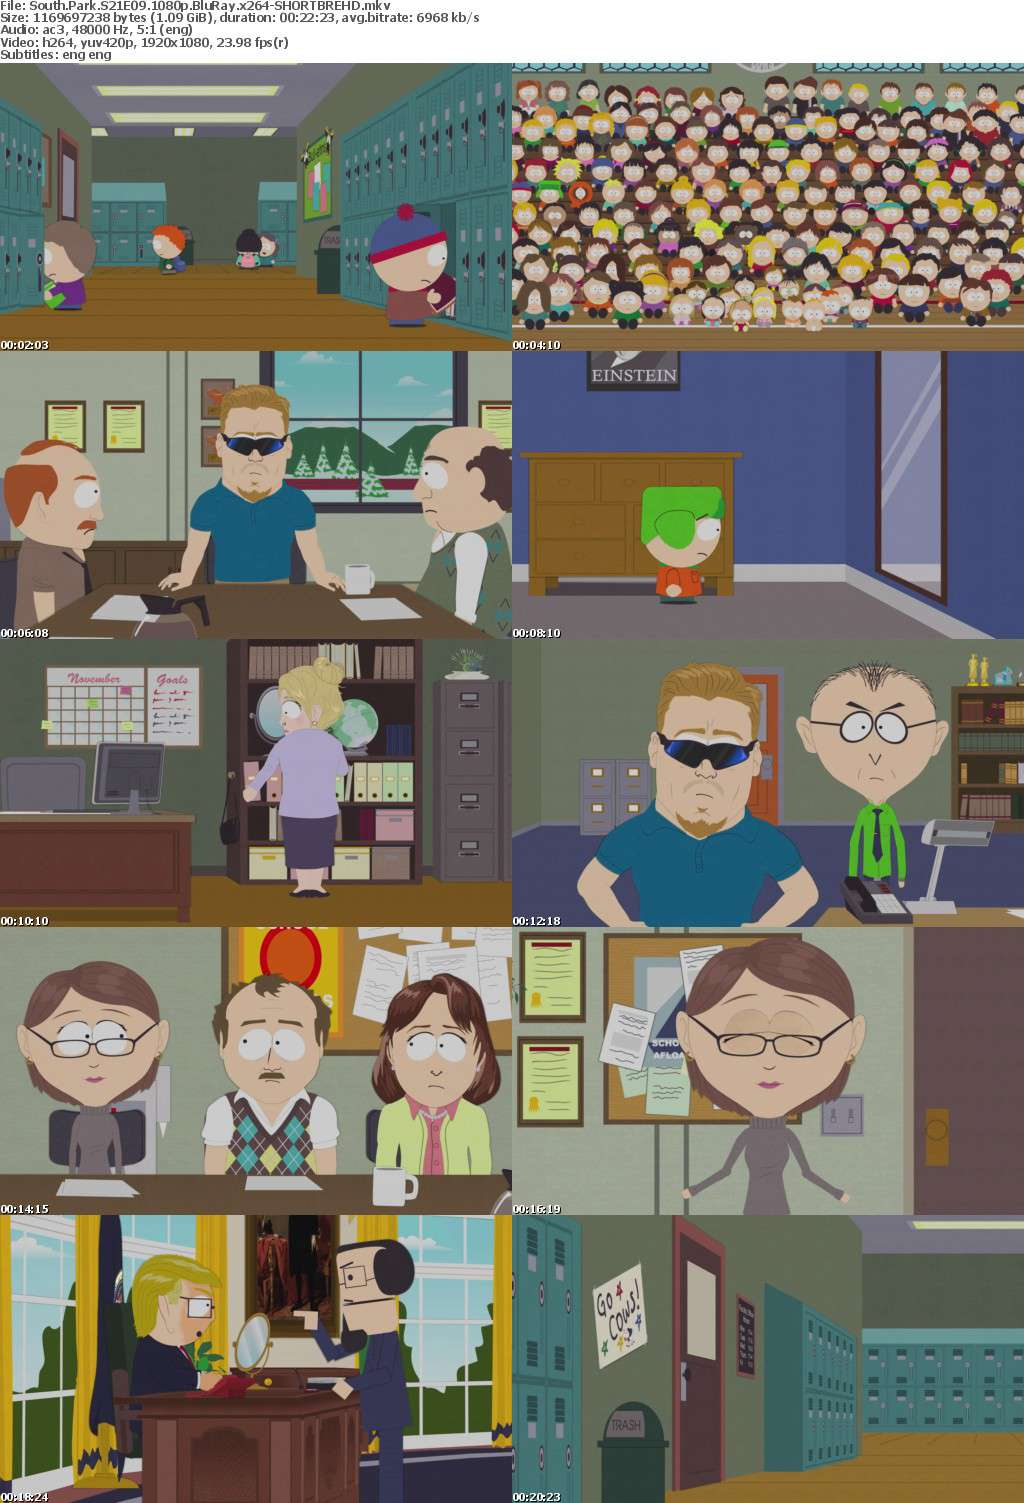 South Park S21 1080p BluRay x264-SHORTBREHD